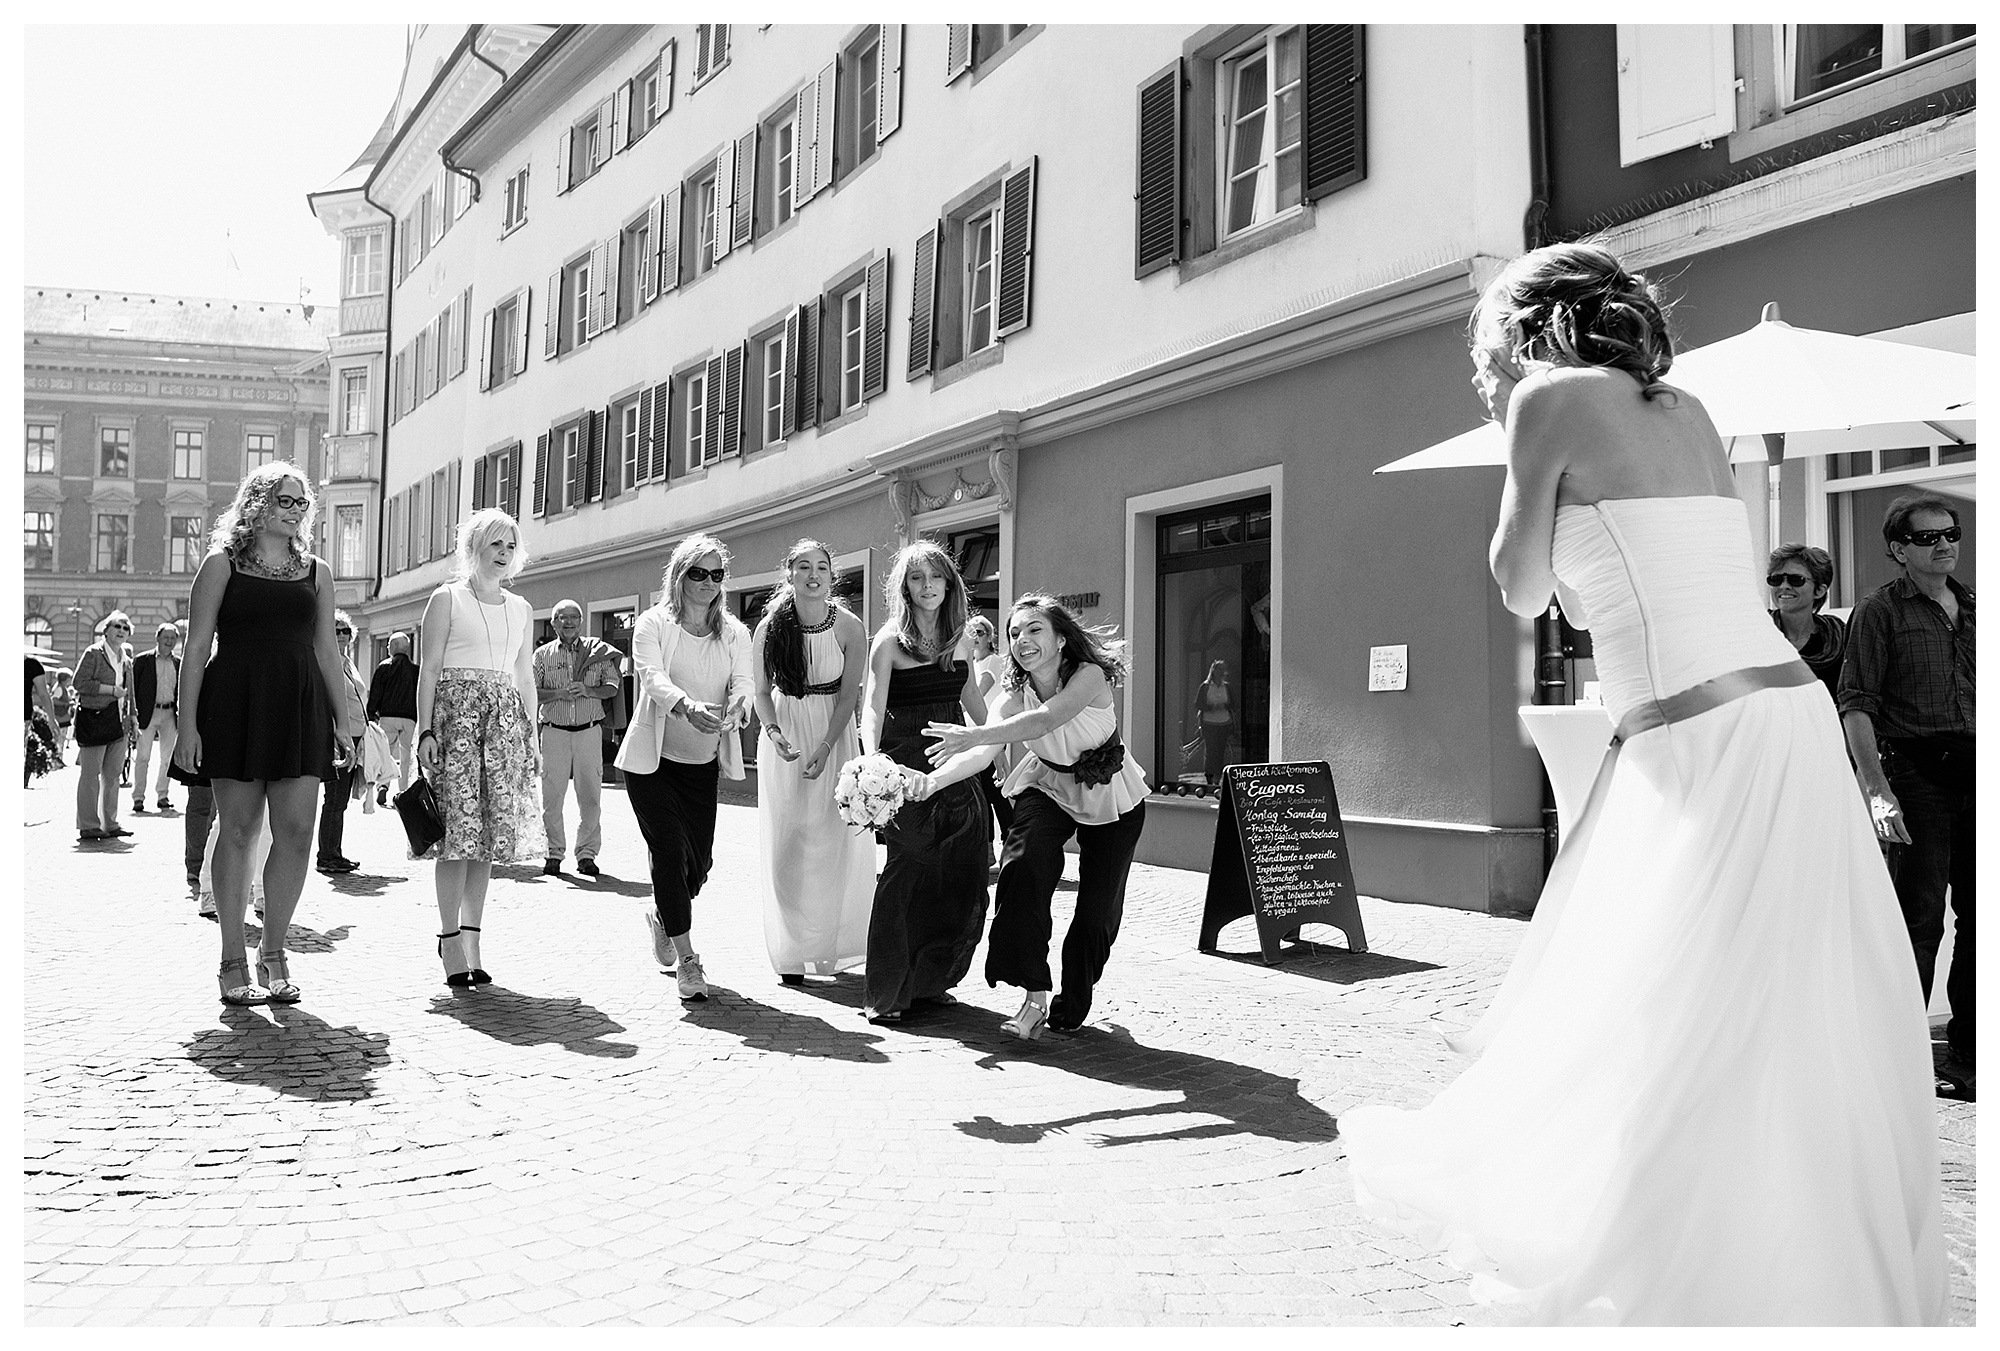 Fotograf Konstanz - Hochzeitsreportage Konstanz Raphael Nicole Elmar Feuerbacher Photography Hochzeit Portrait 34 - Wedding in Constance at Lake of Constance  - 54 -